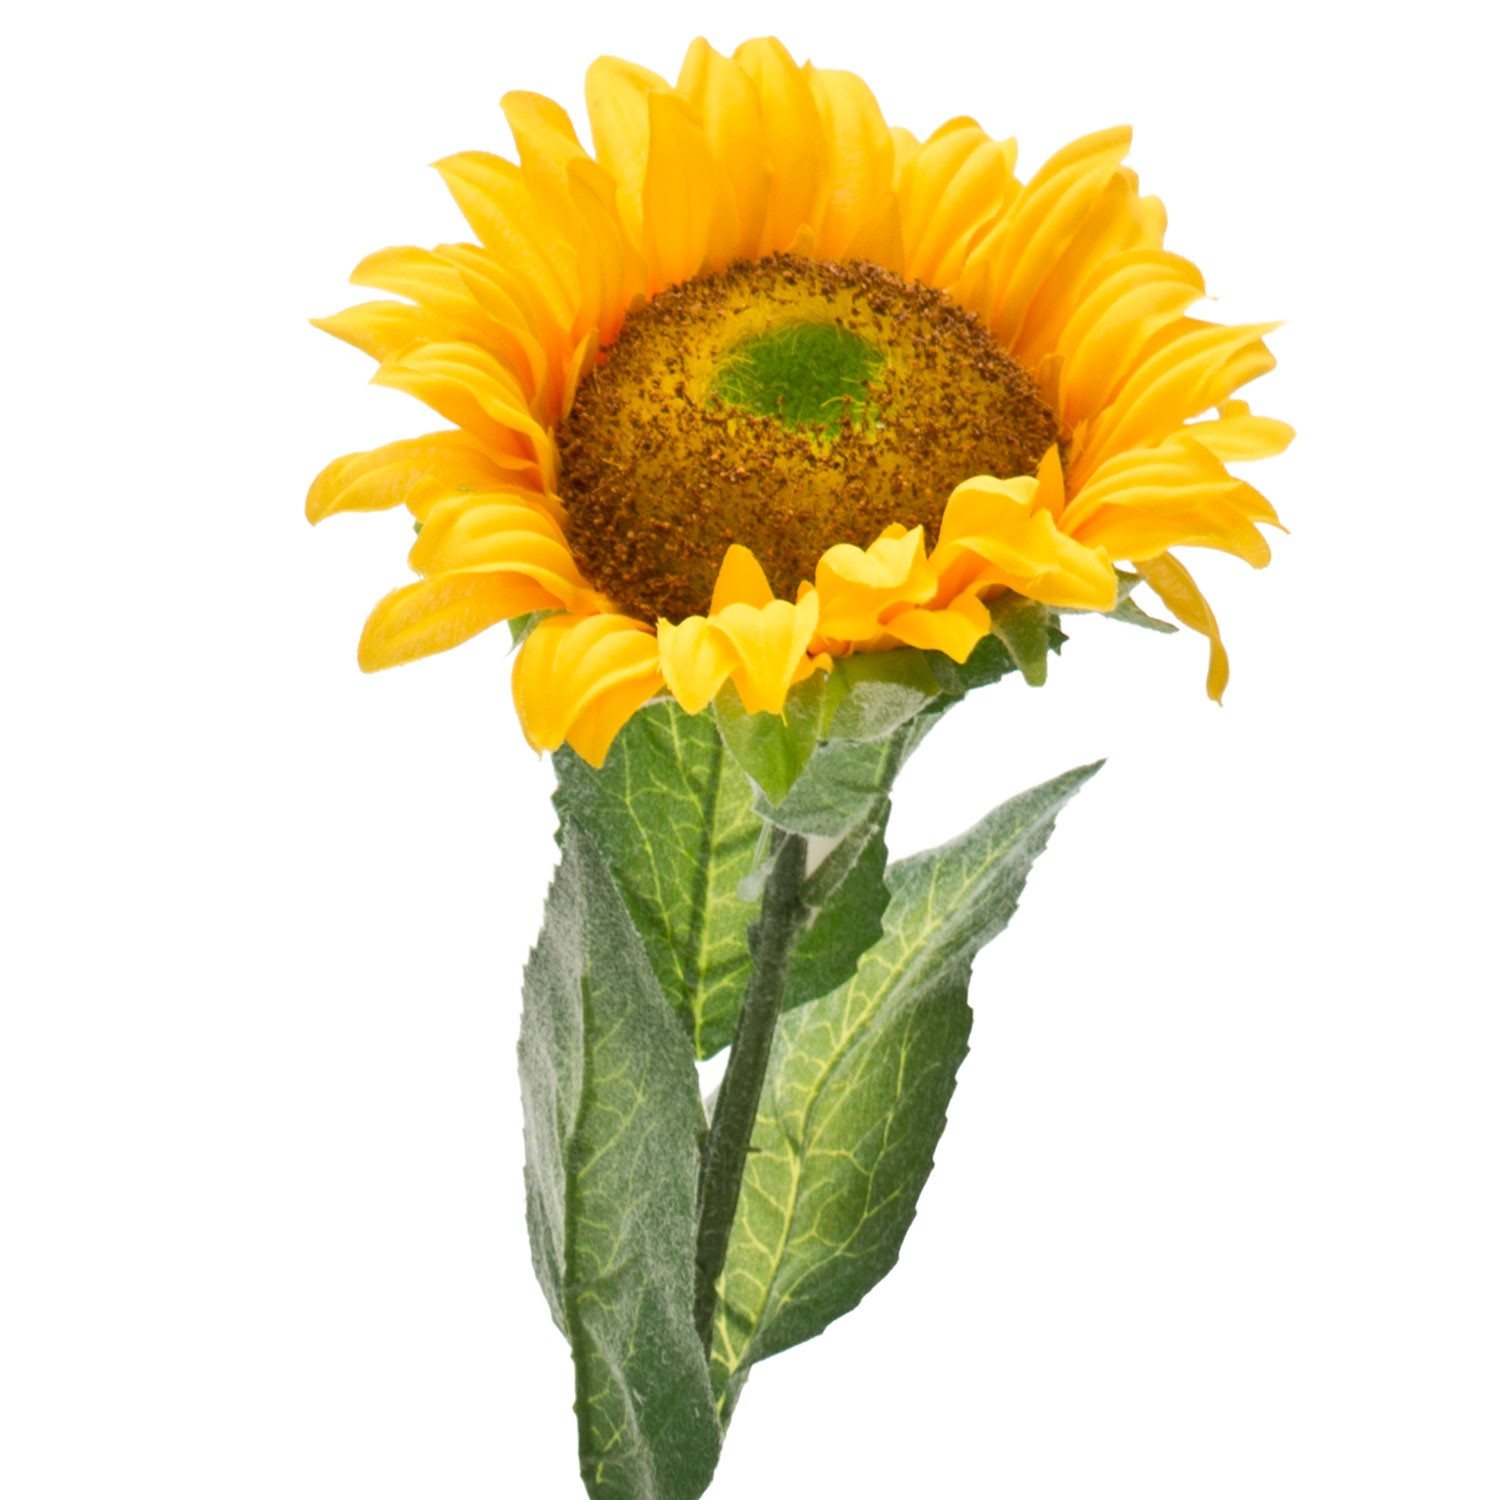 sunflower divorced singles Divorce, annulments  each hull yields a single small kernel which is  such as sunflower seeds, the national sunflower association says that eating too much of.